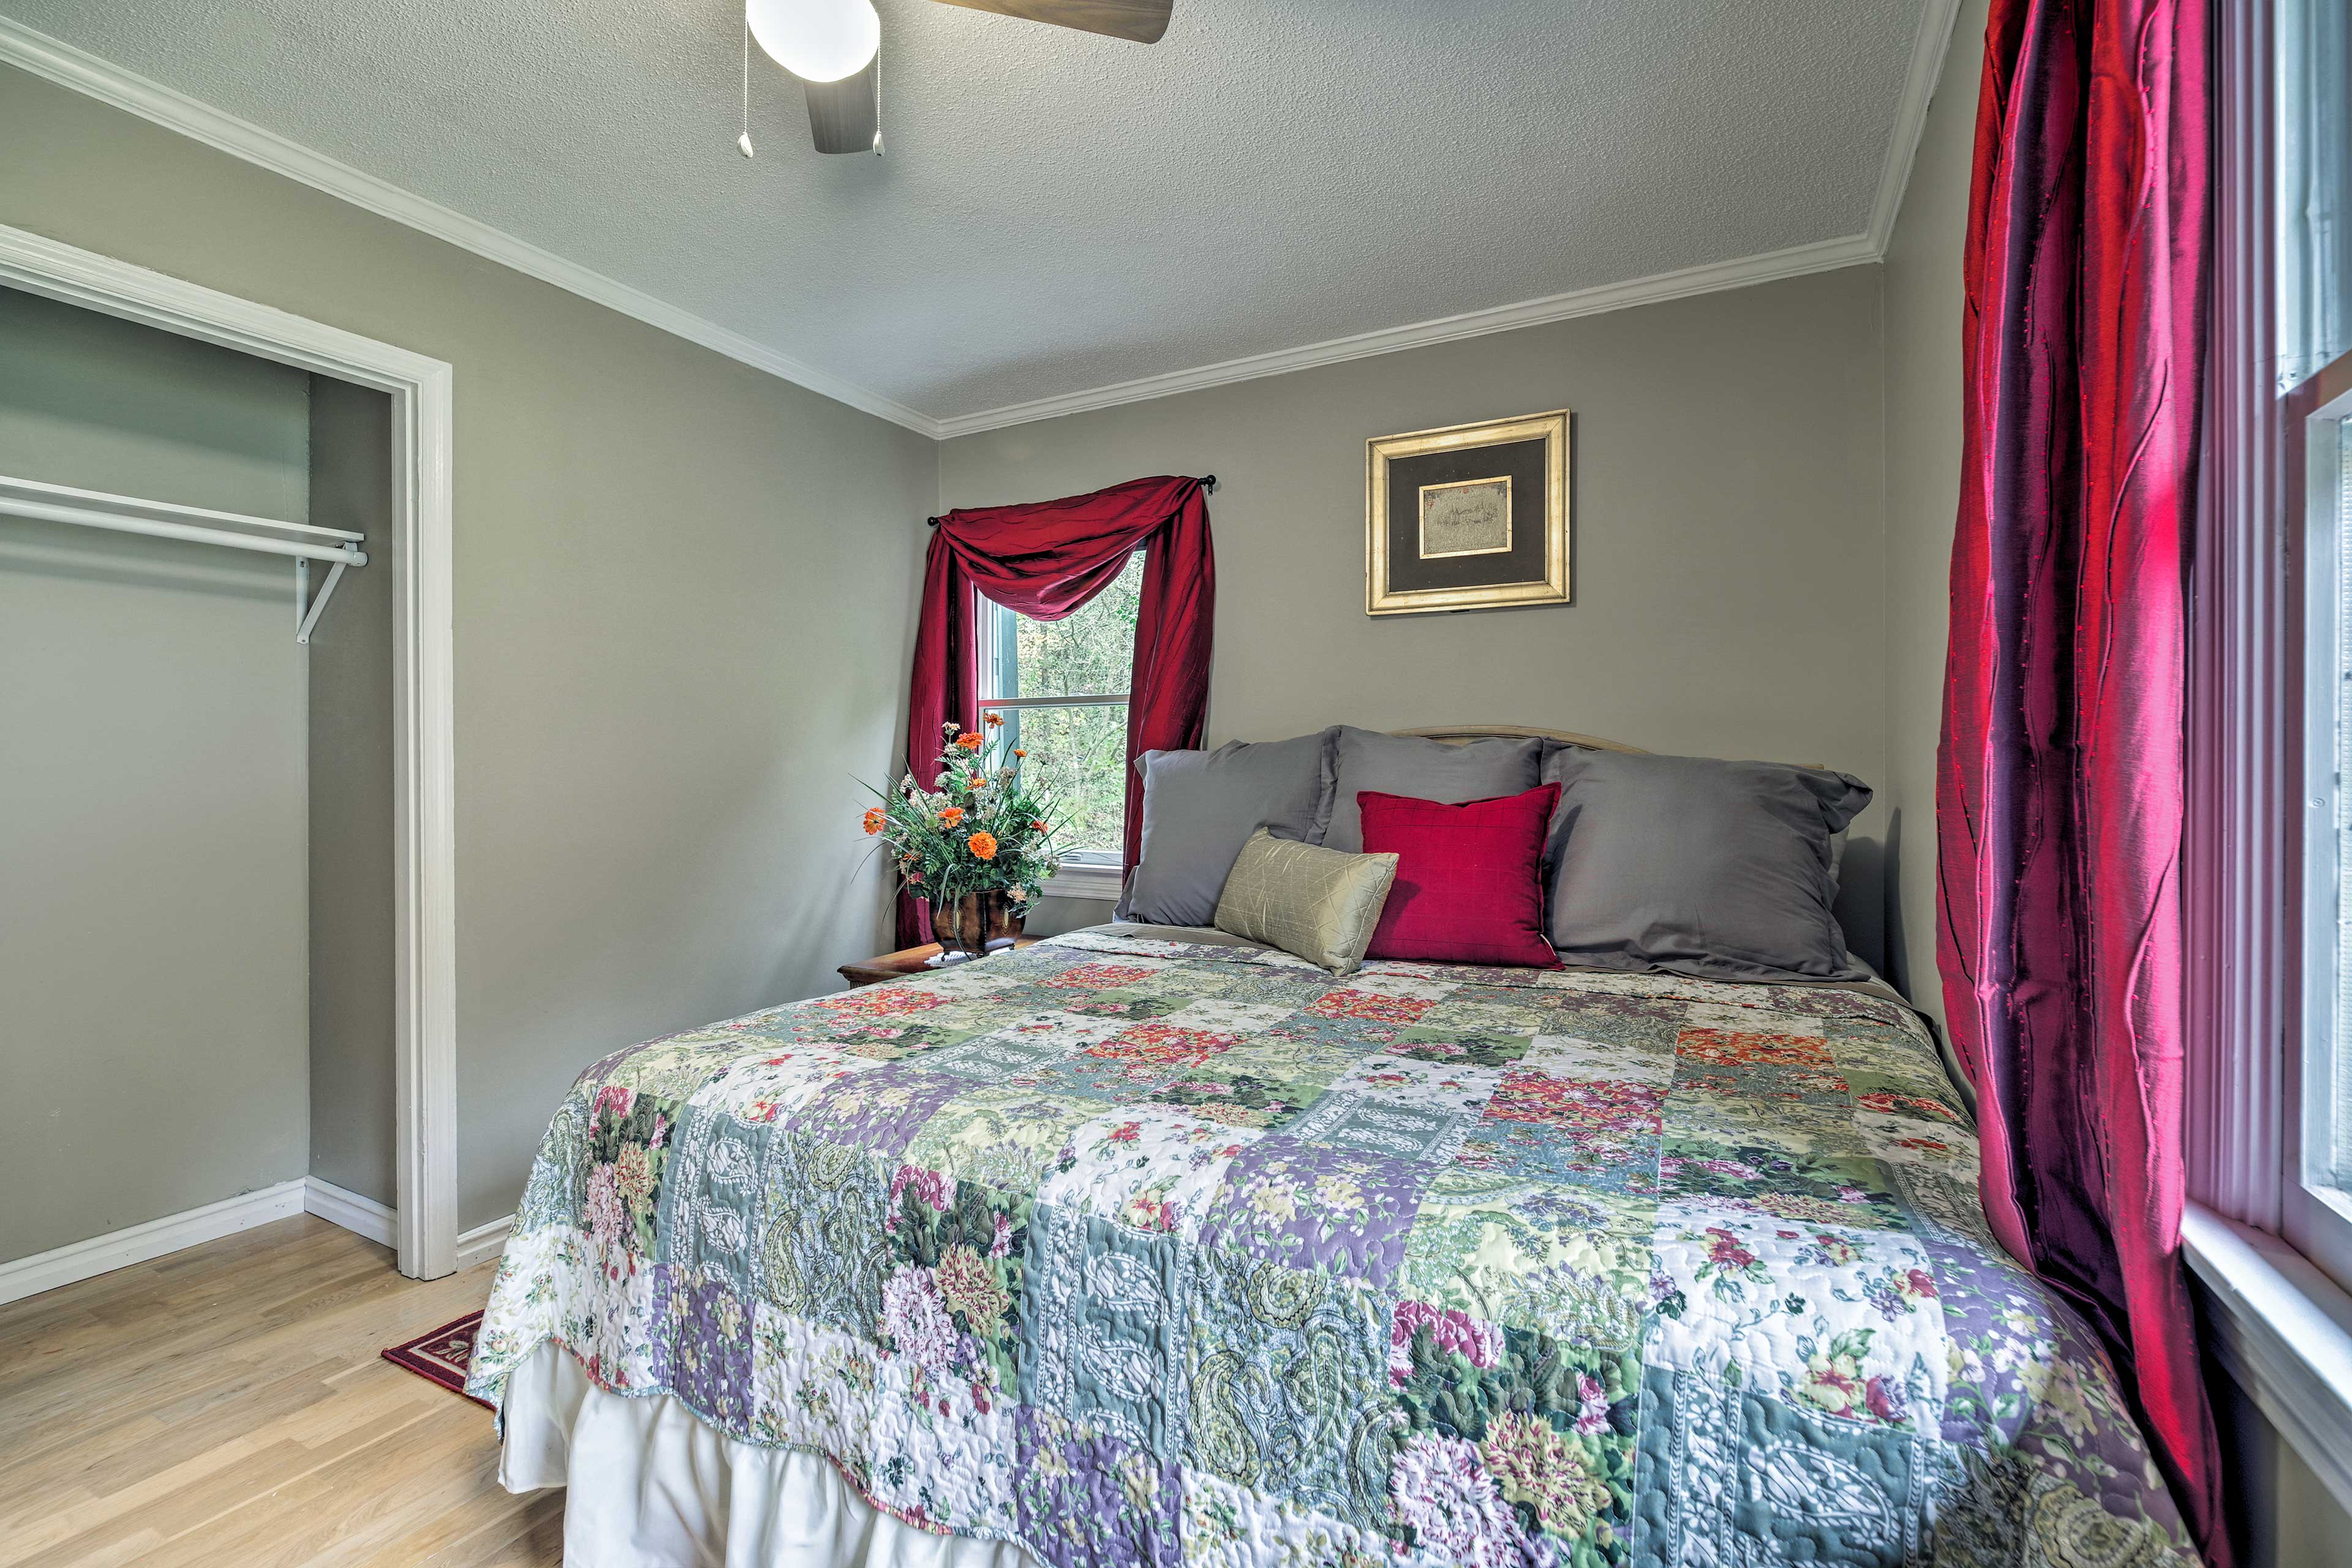 This room also features a large closet.